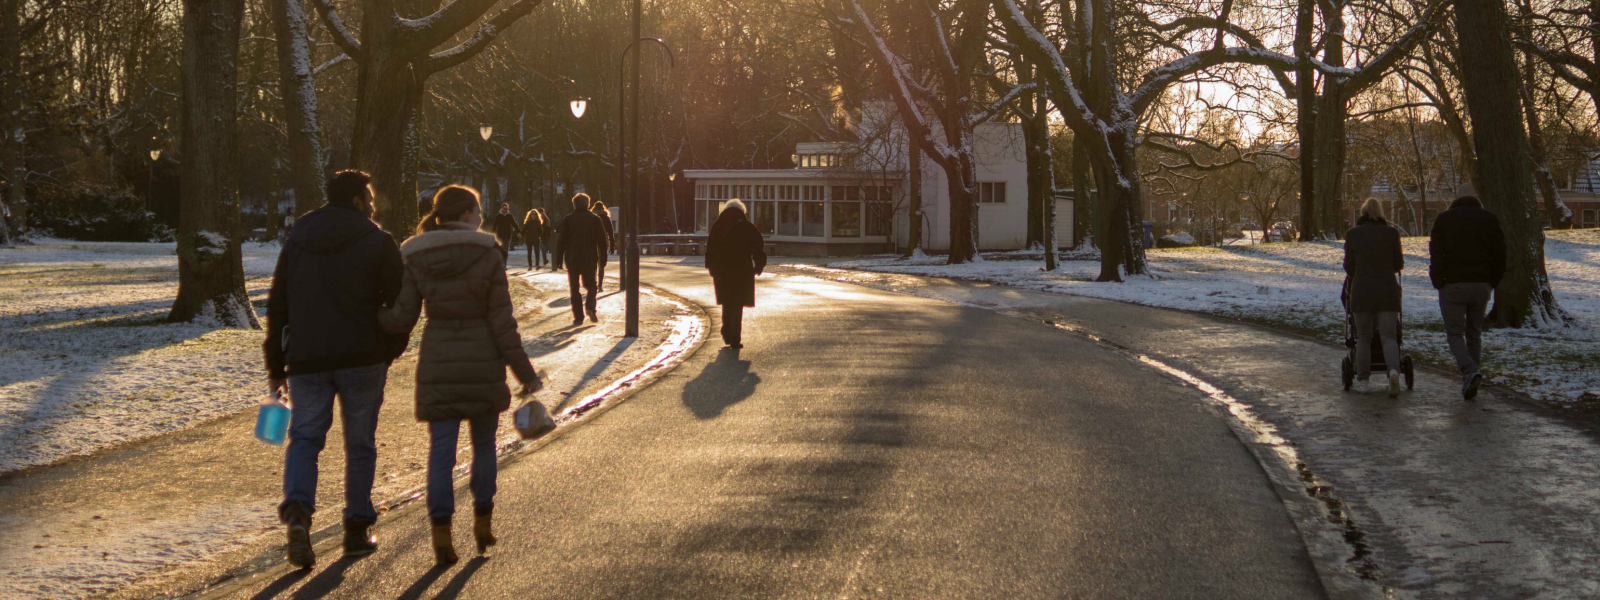 People walk in a park during winter